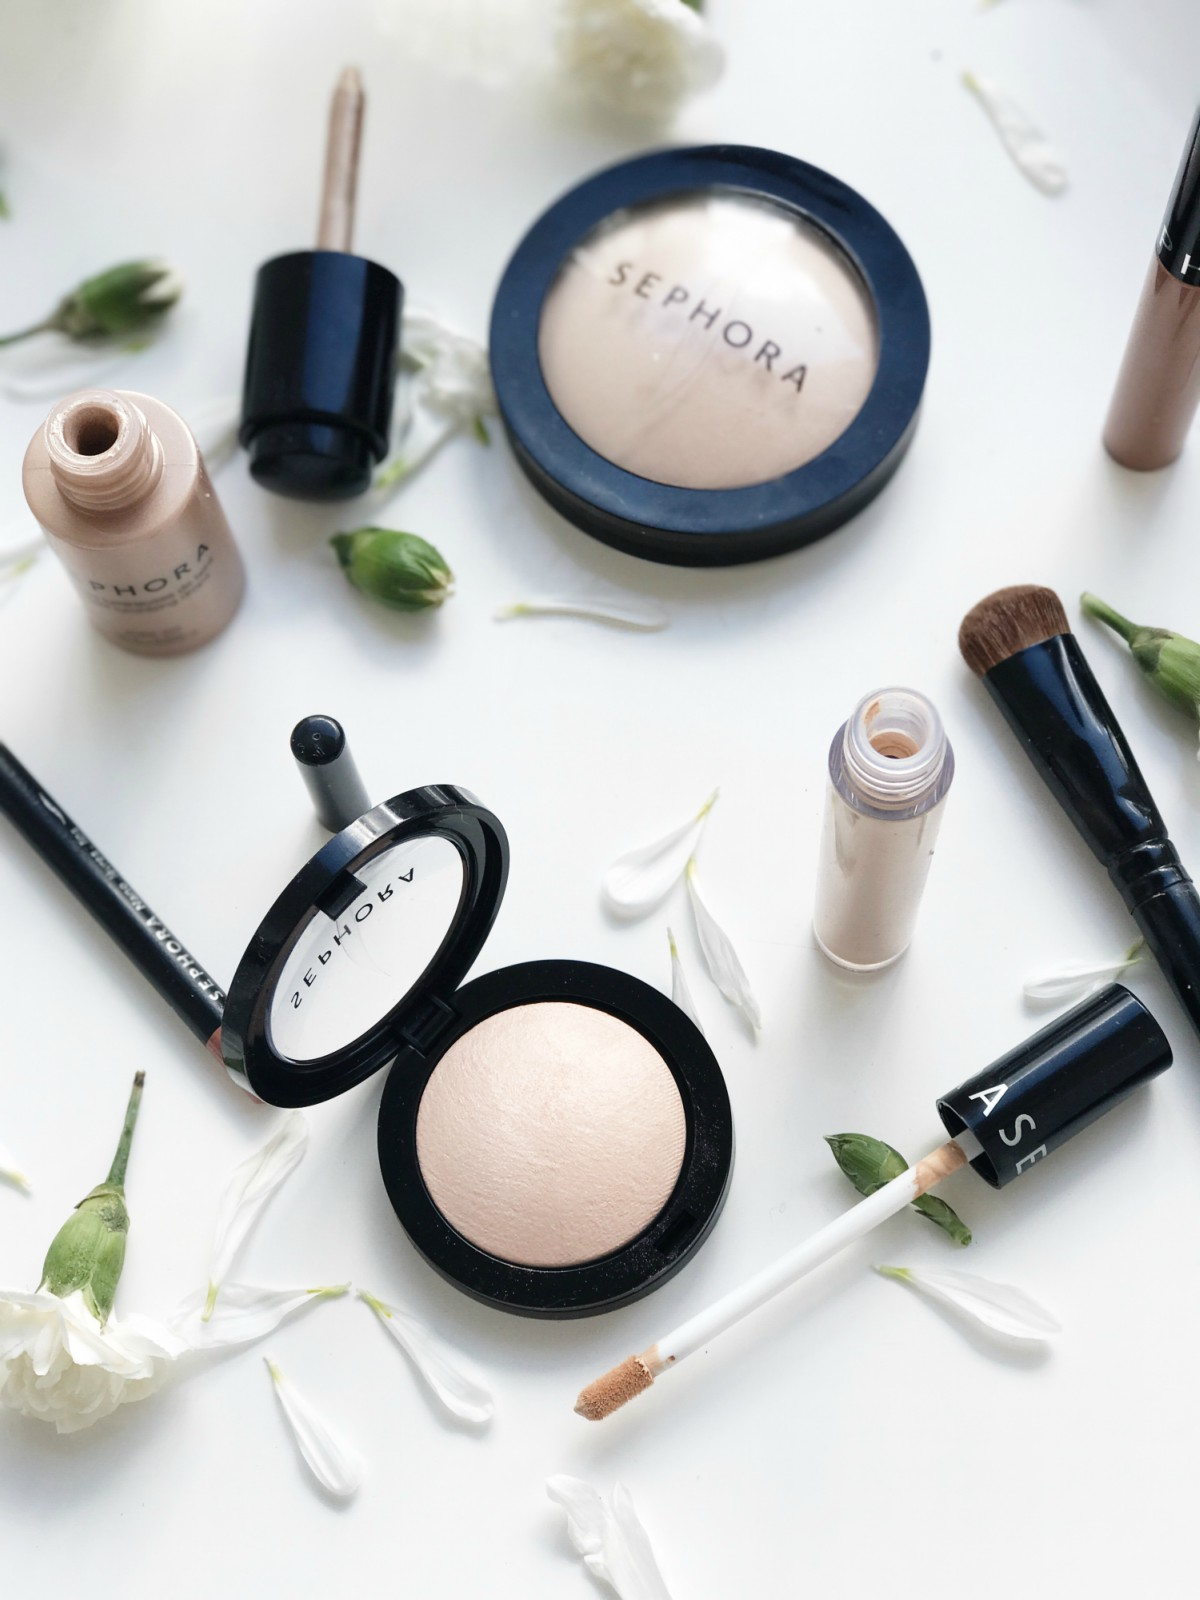 6 Sephora Own Brand Essentials